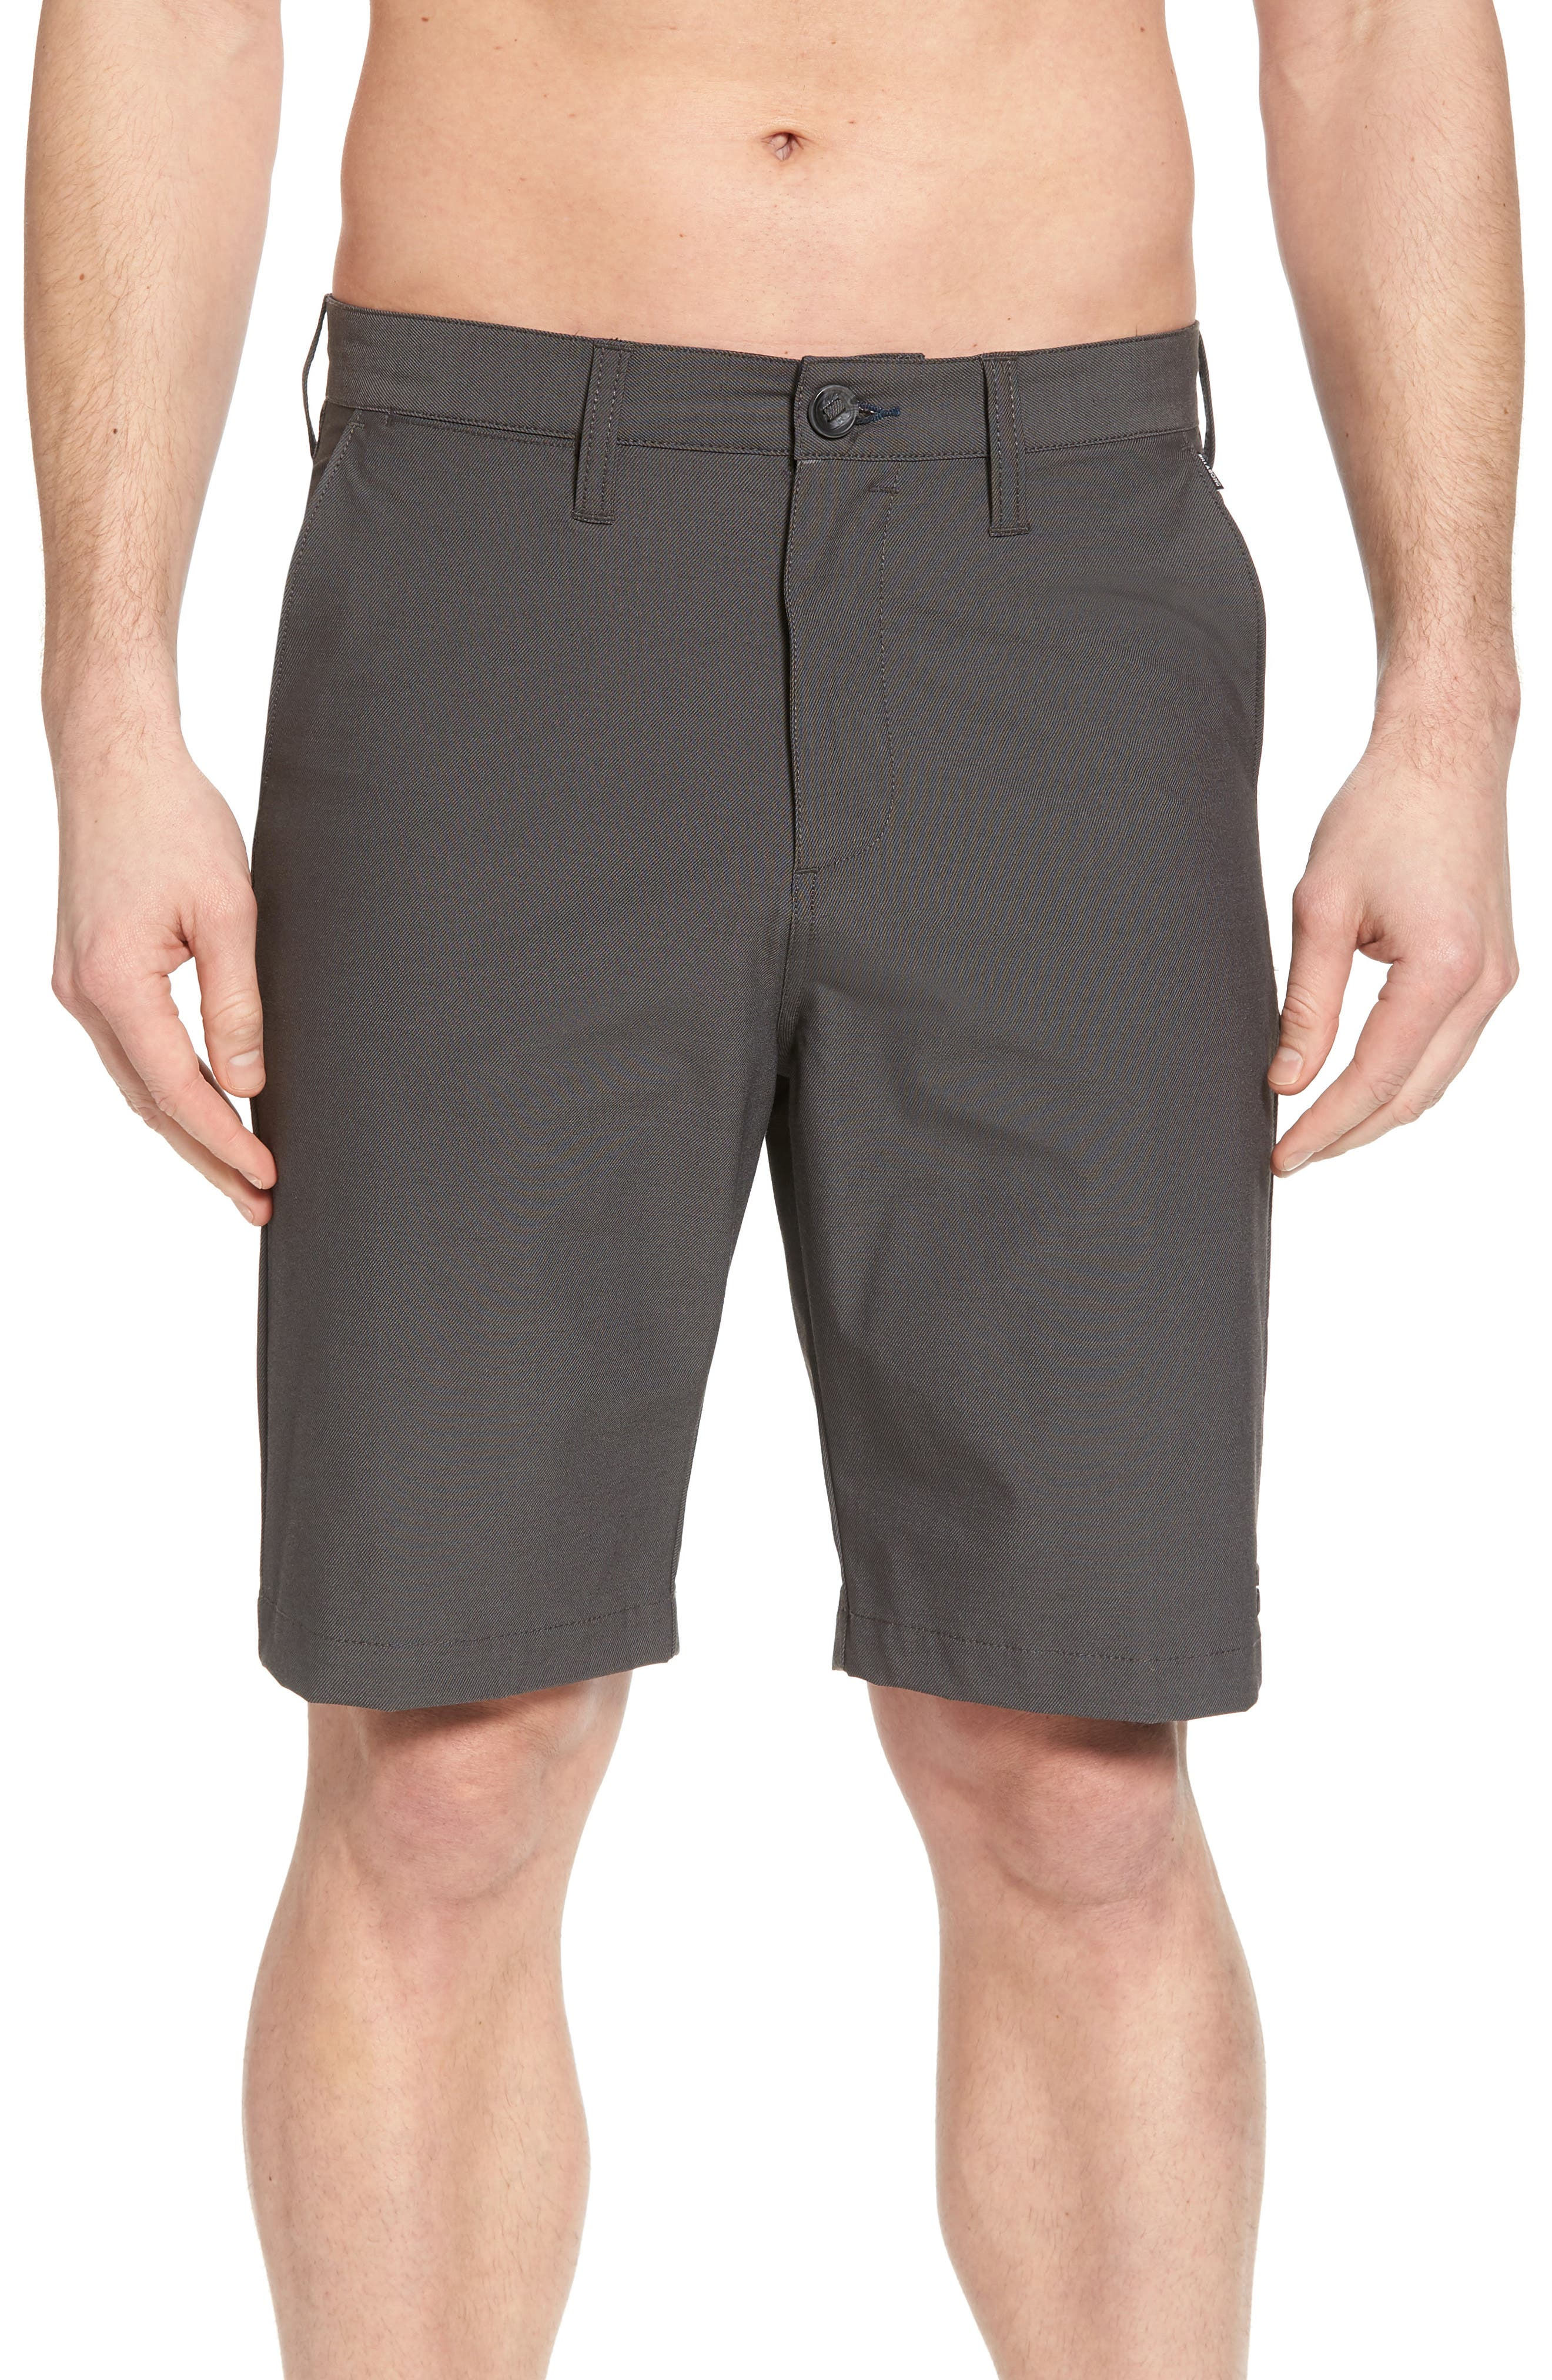 Crossfire X Submersible Twill Shorts,                             Alternate thumbnail 4, color,                             001